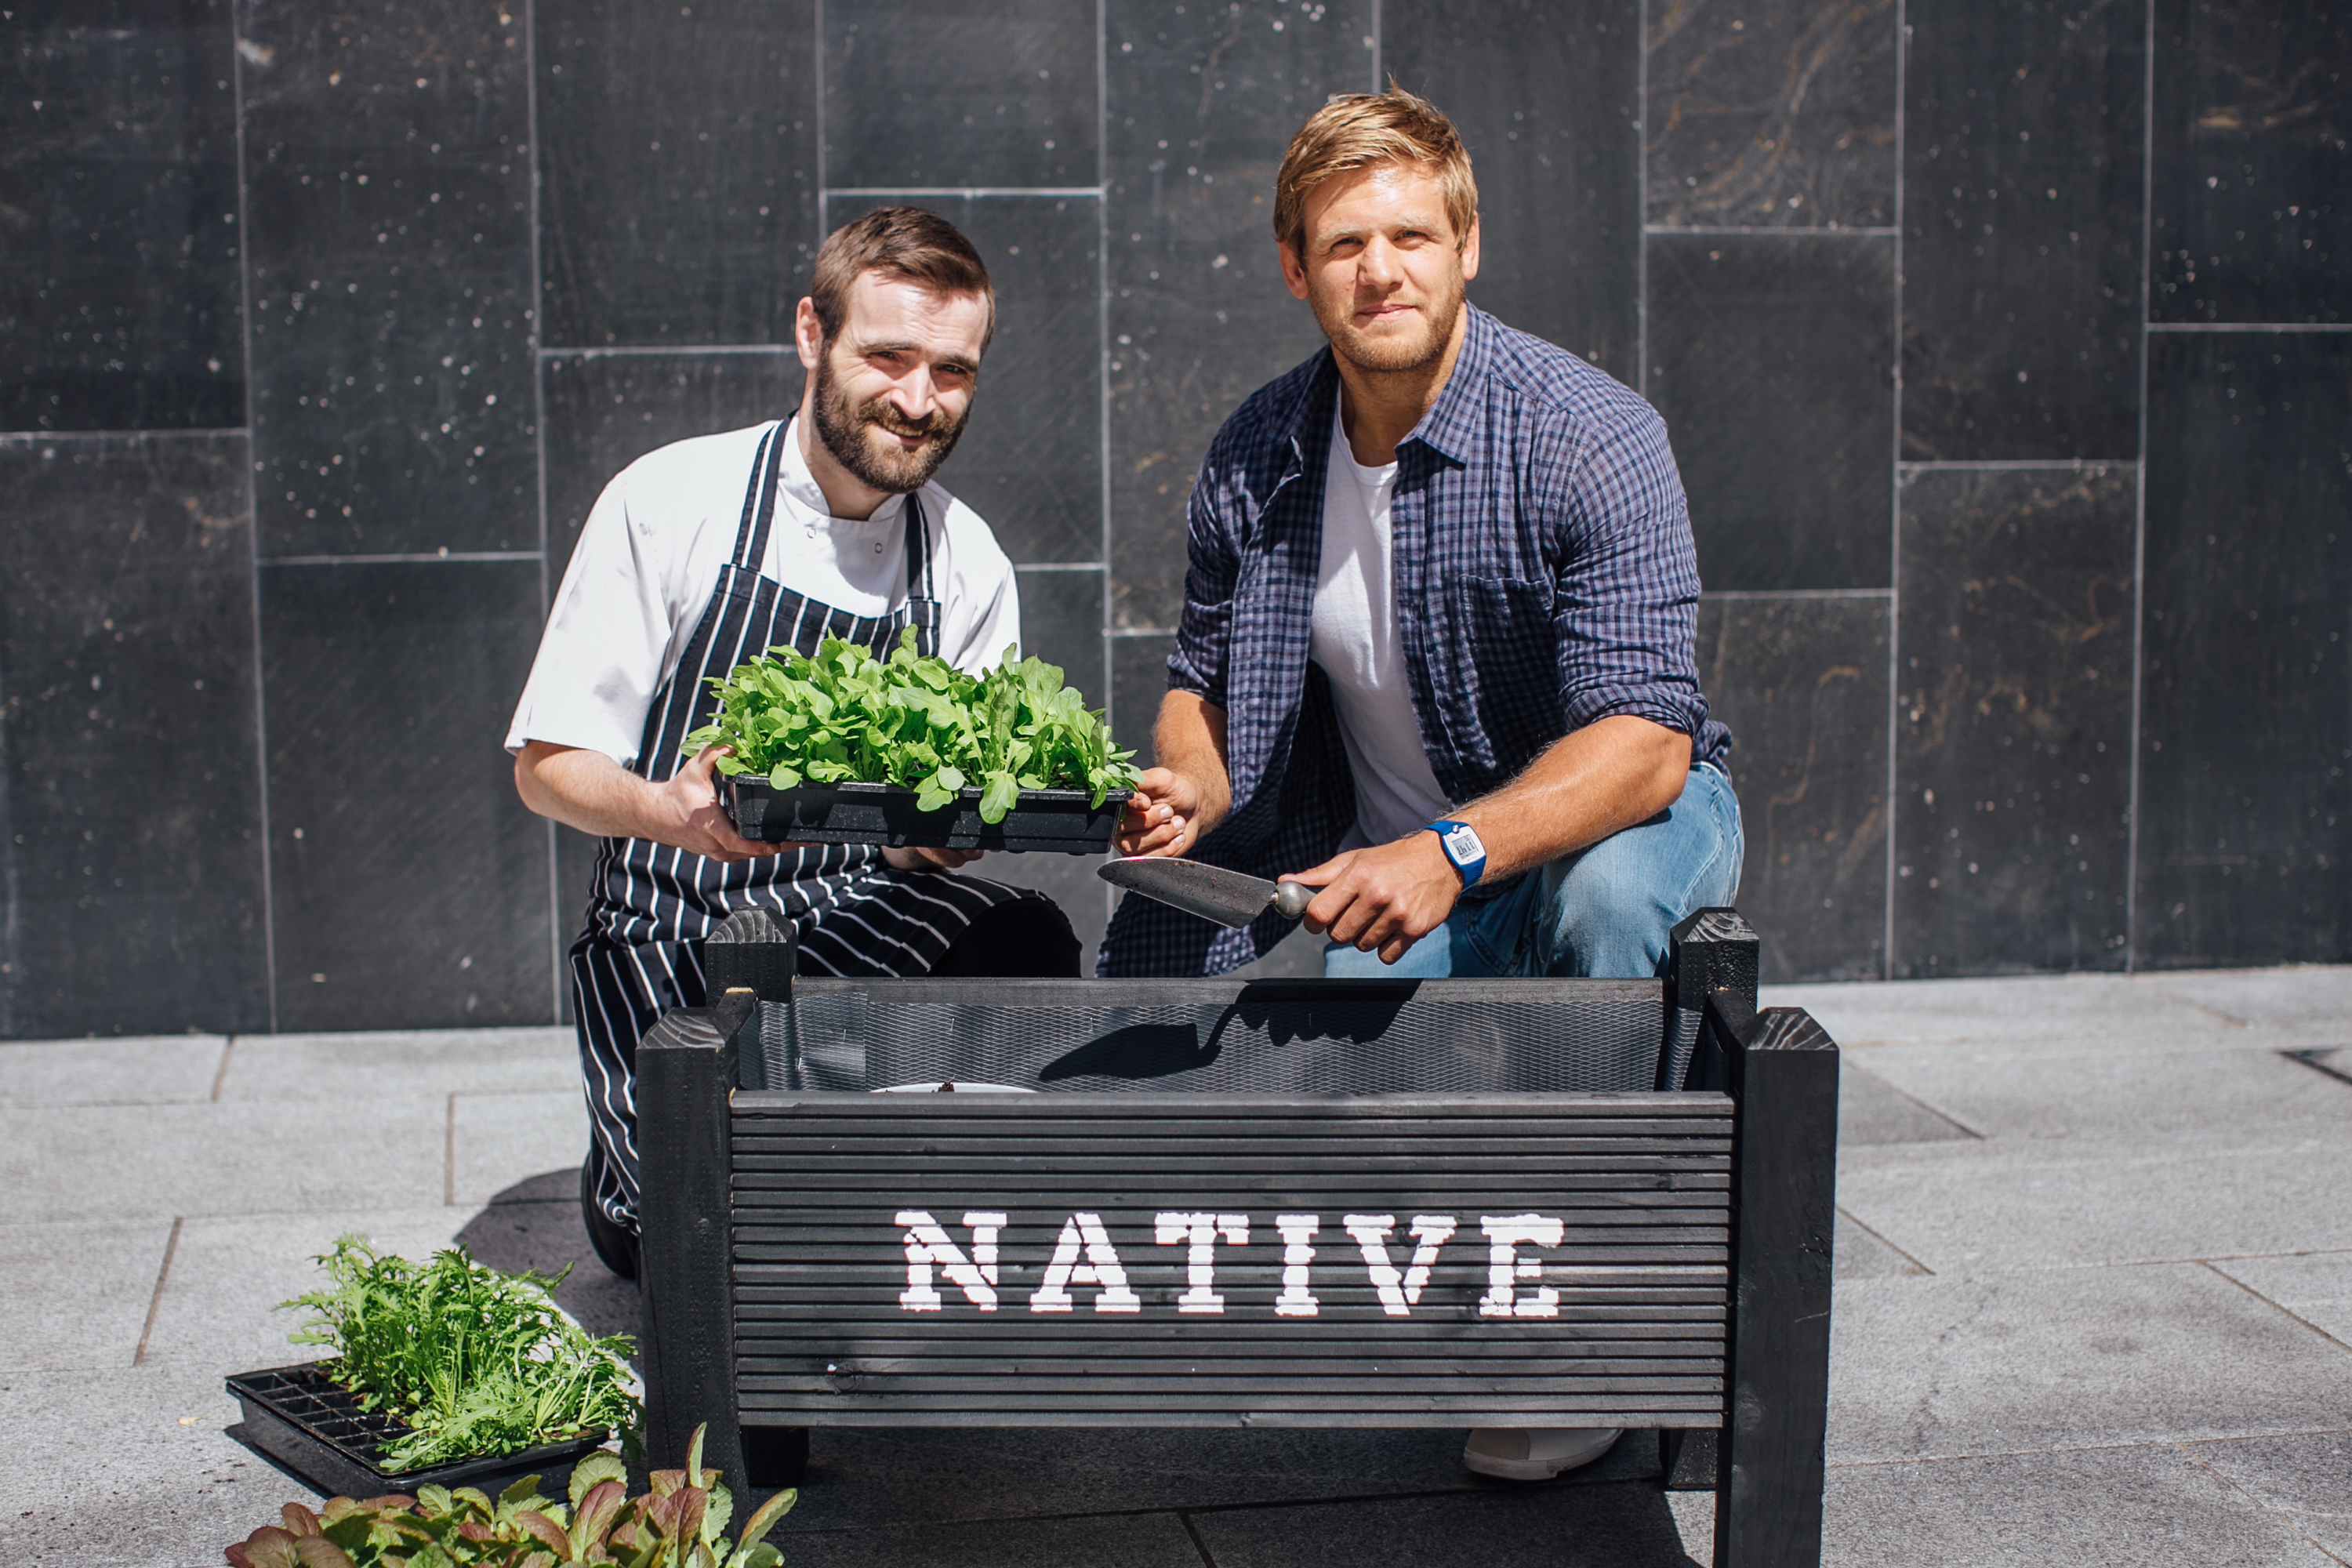 Rugby international star, Chris Henry gives Native chef, Barry Heaton a helping hand planting herbs for the restaurant kitchen. Located in the MAC arts venue at St Anne's Square in Belfast's busy Cathedral Quarter, Native is the latest outlet for Yellow Door Group, which is also the exclusive corporate caterer for Ulster Rugby at the Kingspan Stadium, Belfast. Picture by Geoff Telford Photography.